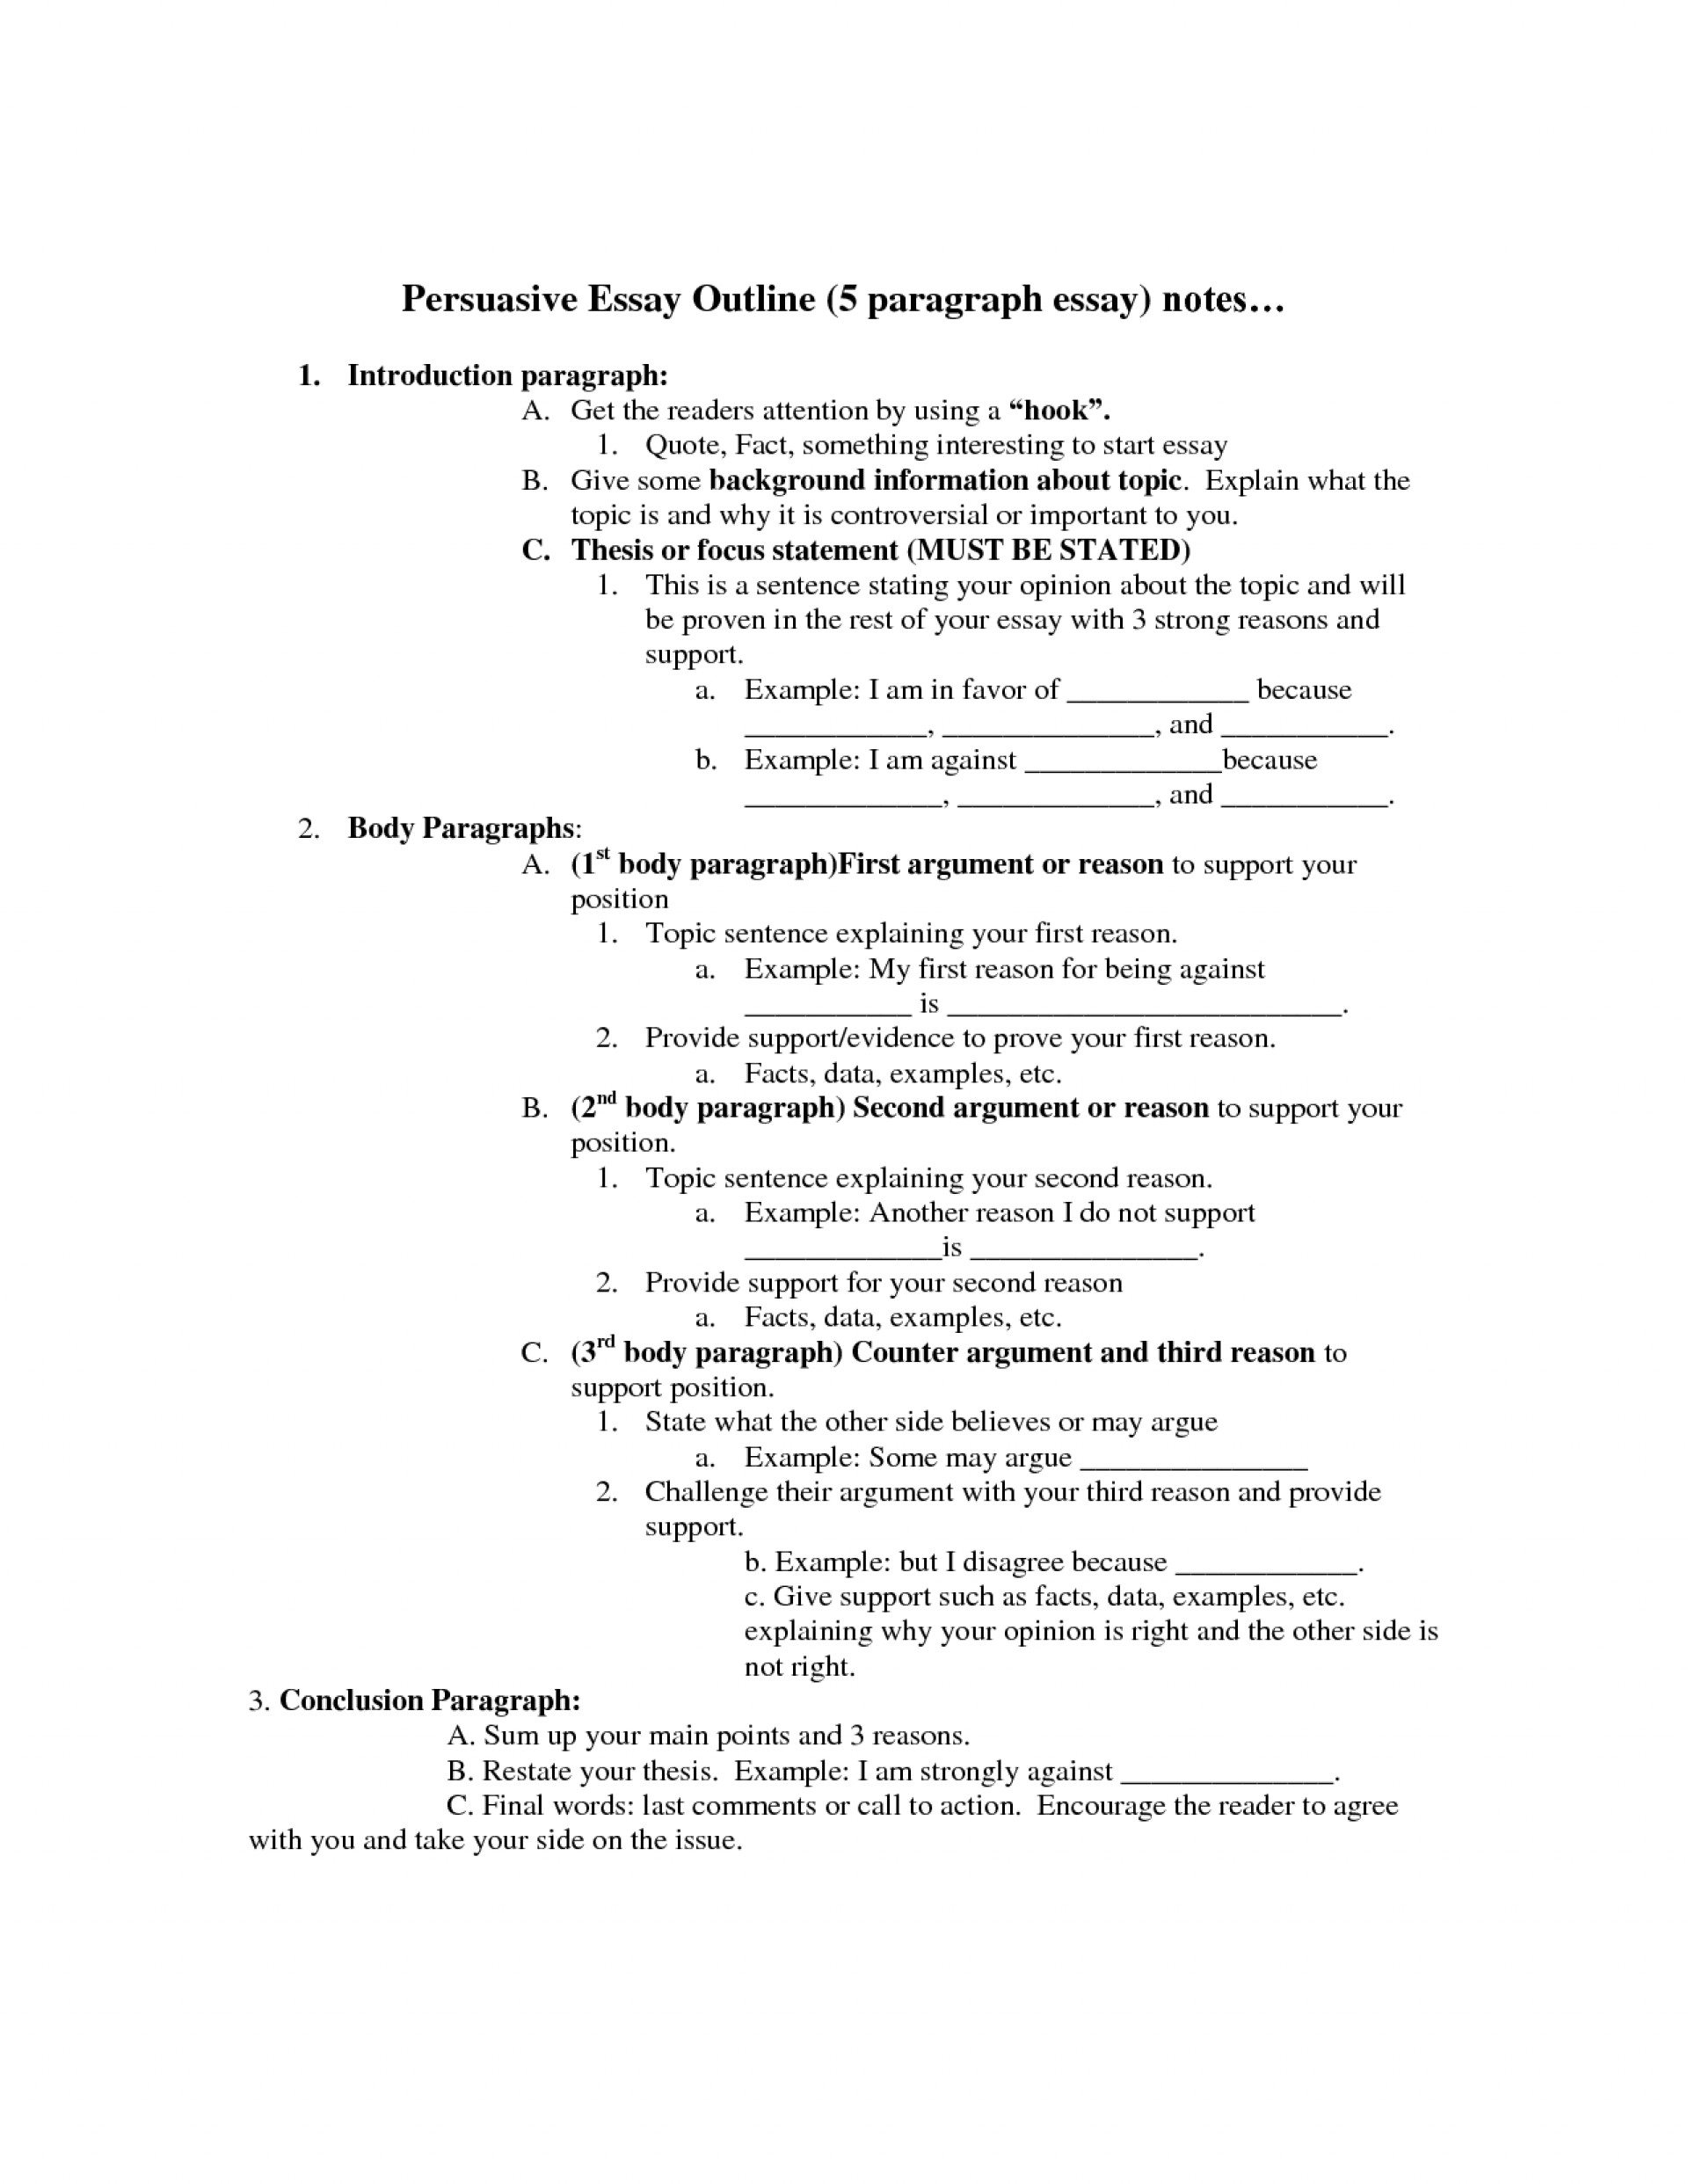 006 Persuasive Essay Outline Unbelievable Doc Template Middle School Pdf 1920